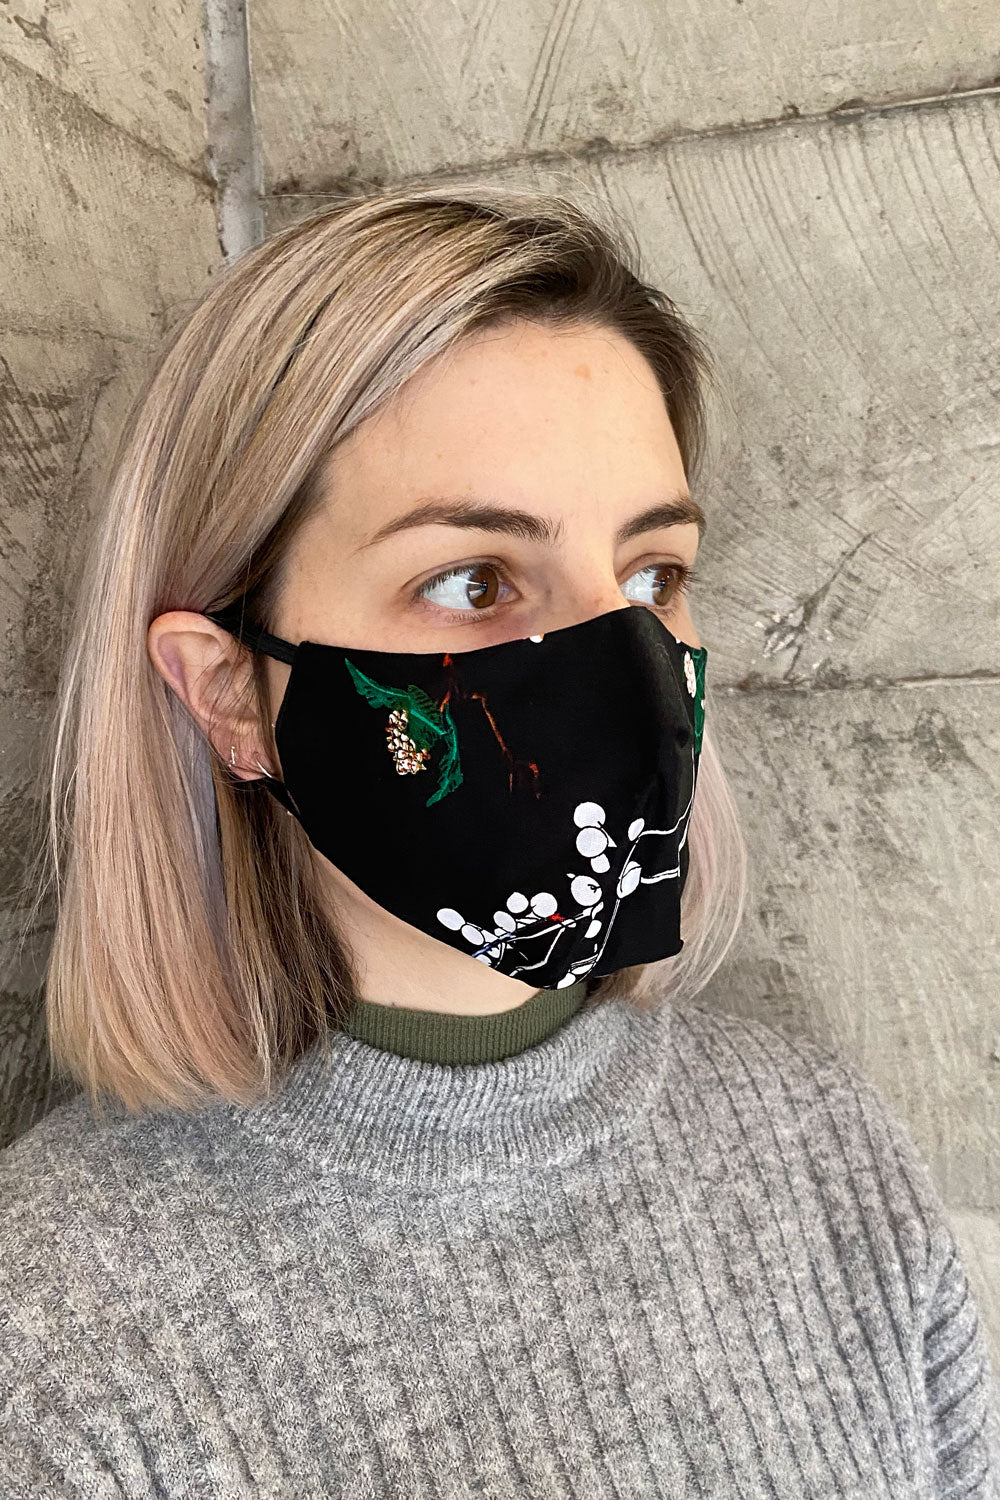 WOMEN'S SIMPLISTIC - Wholesale Corporate Mask - Email to enquire